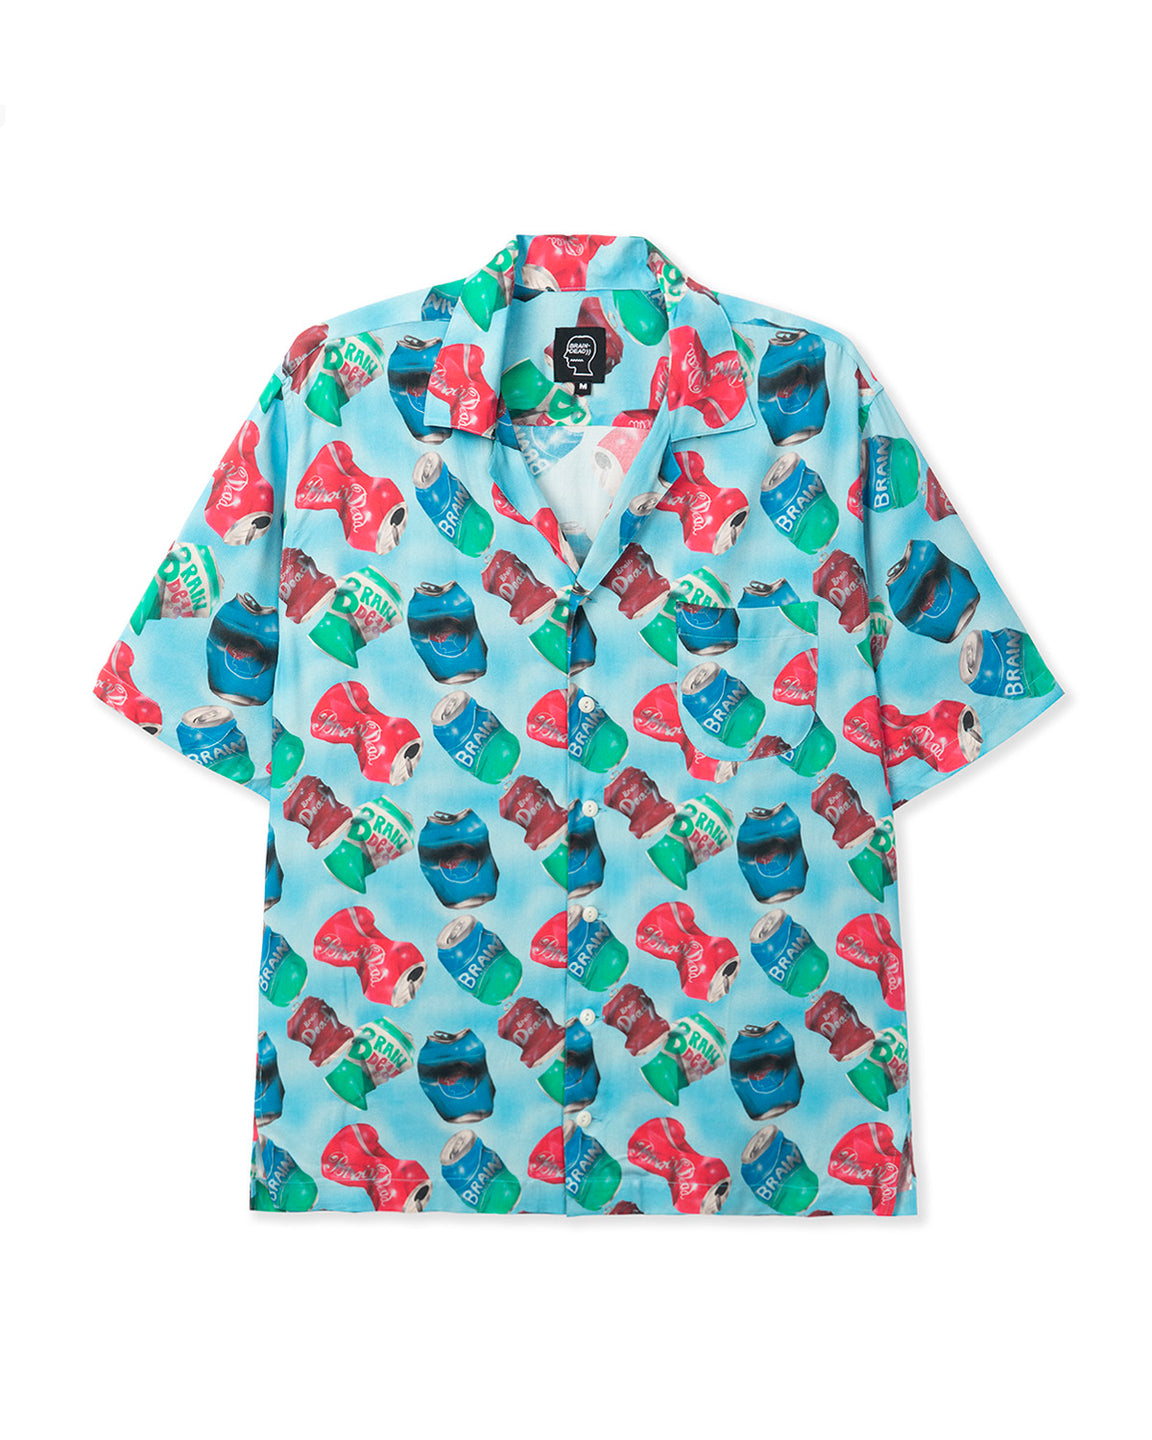 Aaron Jupin Cans Short Sleeve Hawaiian Shirt - Blue